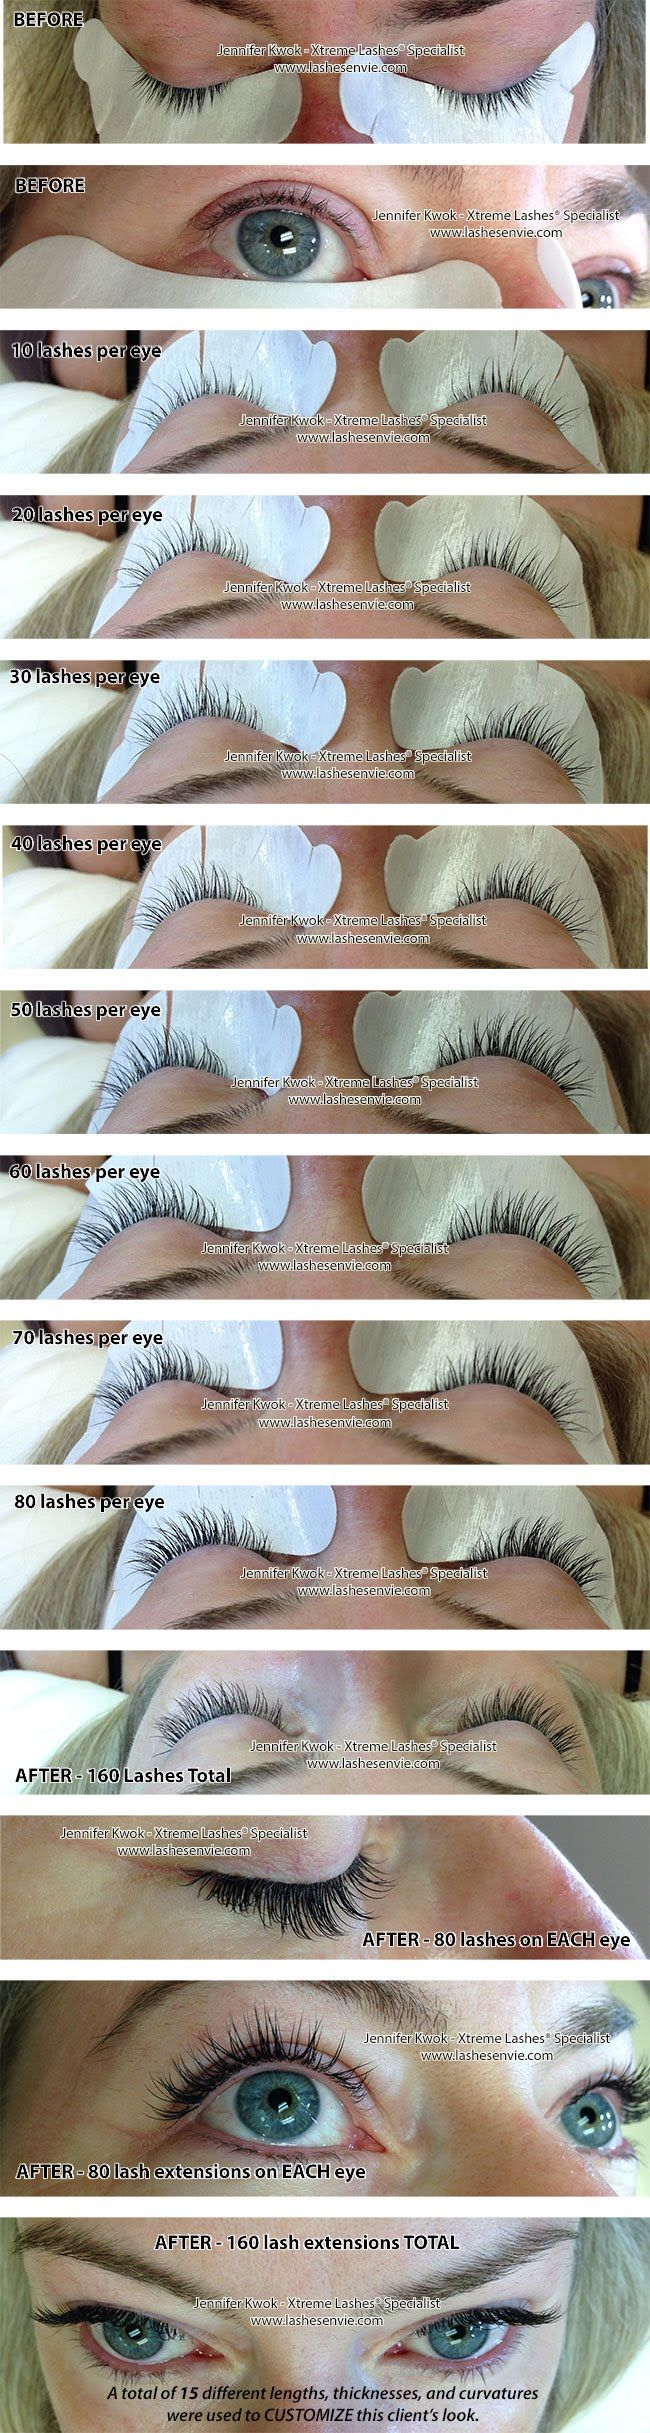 "The following image shows BEFORE, DURING (lashes per eye), and AFTER photos. This reference I created provides an idea of what each set of ""lashes per eye"" looks like. I customized her lash extensions by using 15 different lengths, thicknesses, and curvatures."